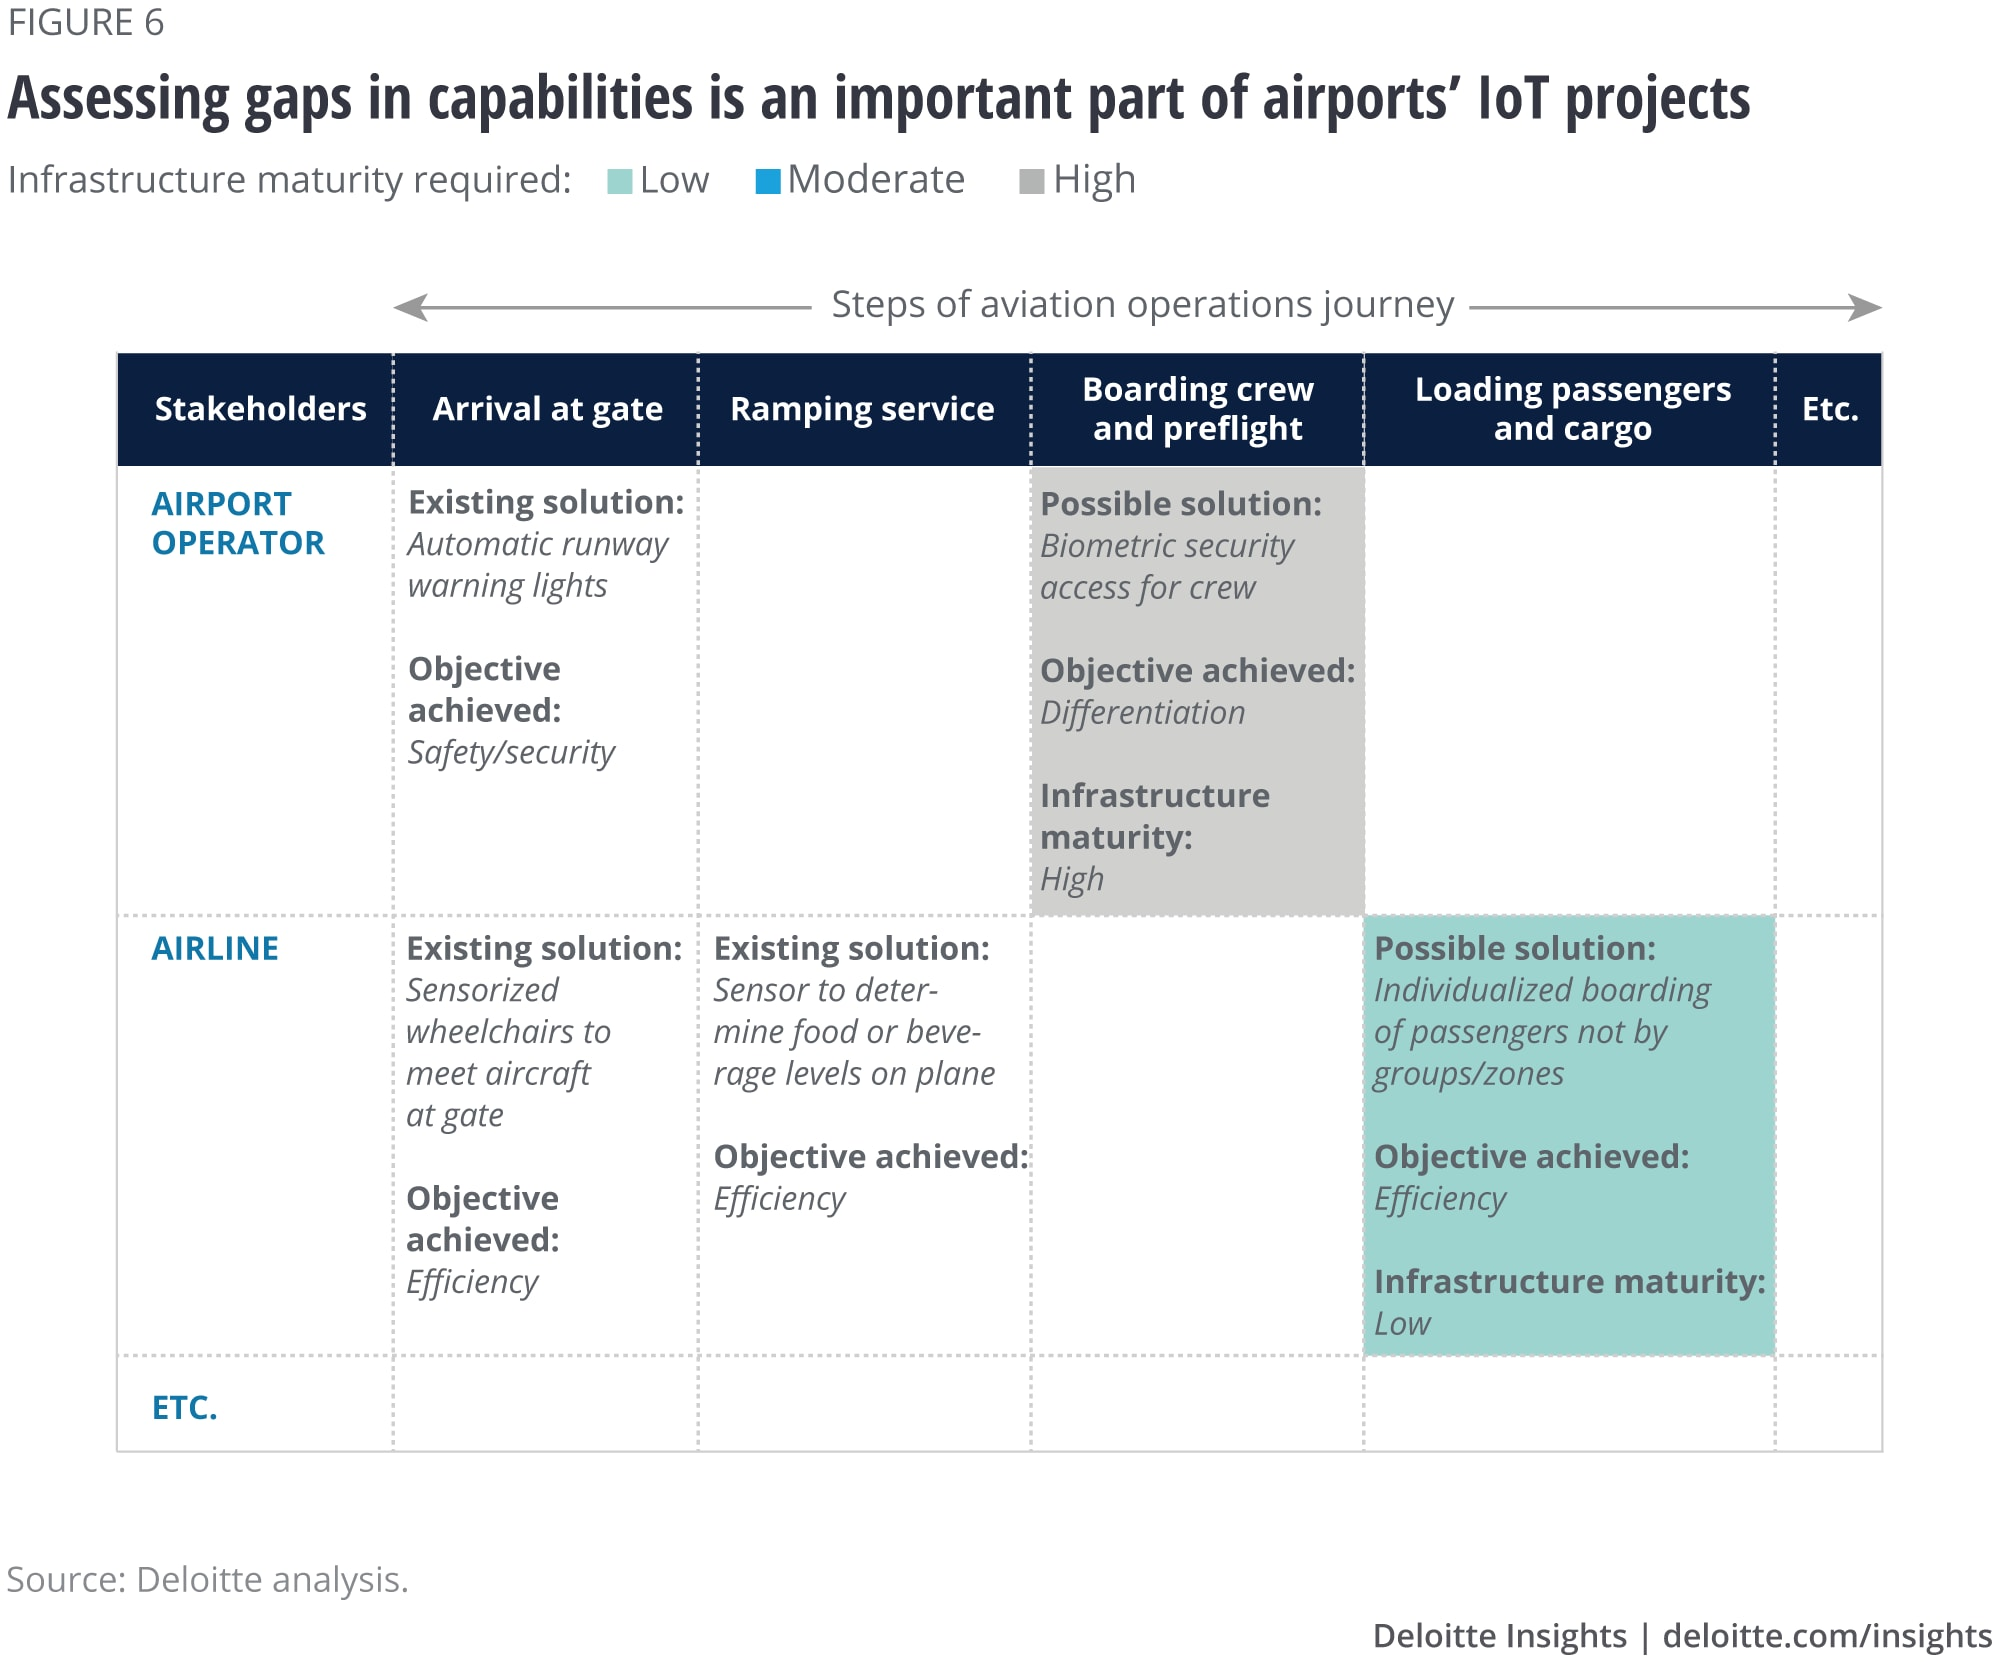 Assessing gaps in capabilities is an important part of airports' IoT projects